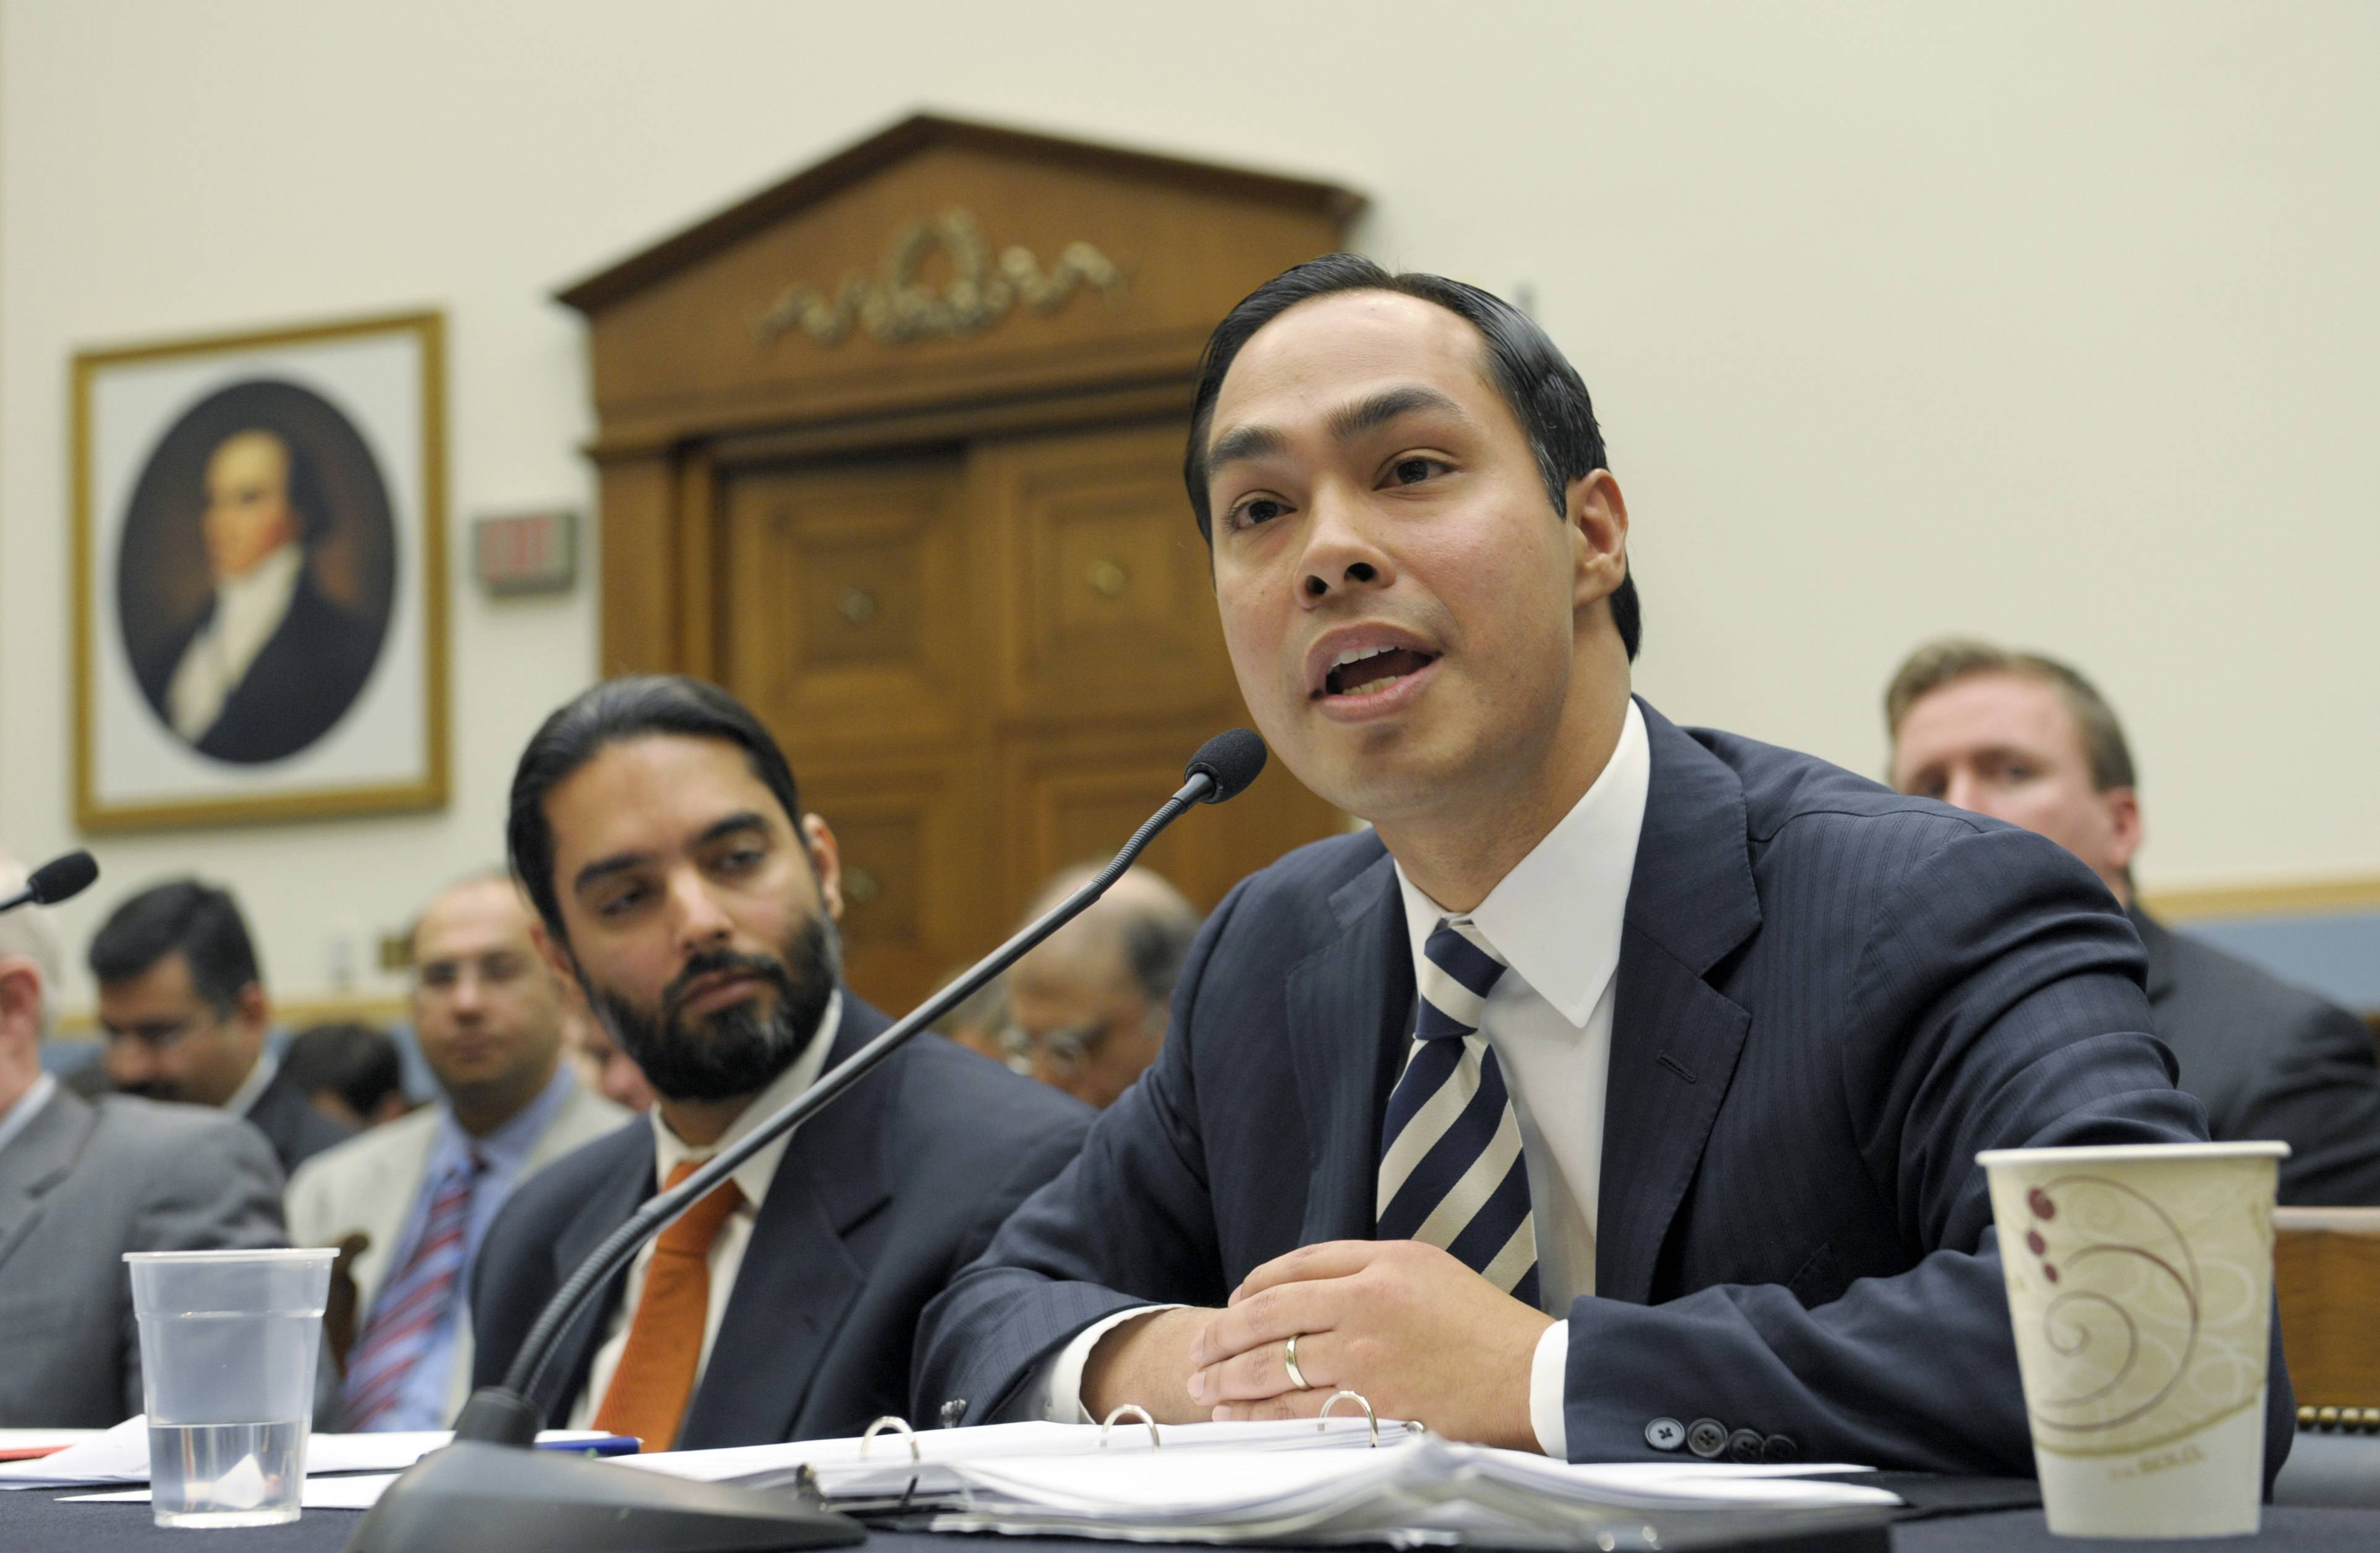 President Barack Obama's expected nomination of San Antonio, Texas, Mayor Julian Castro as secretary of Housing and Urban Development could test the 39-year-old's ability to navigate Washington.